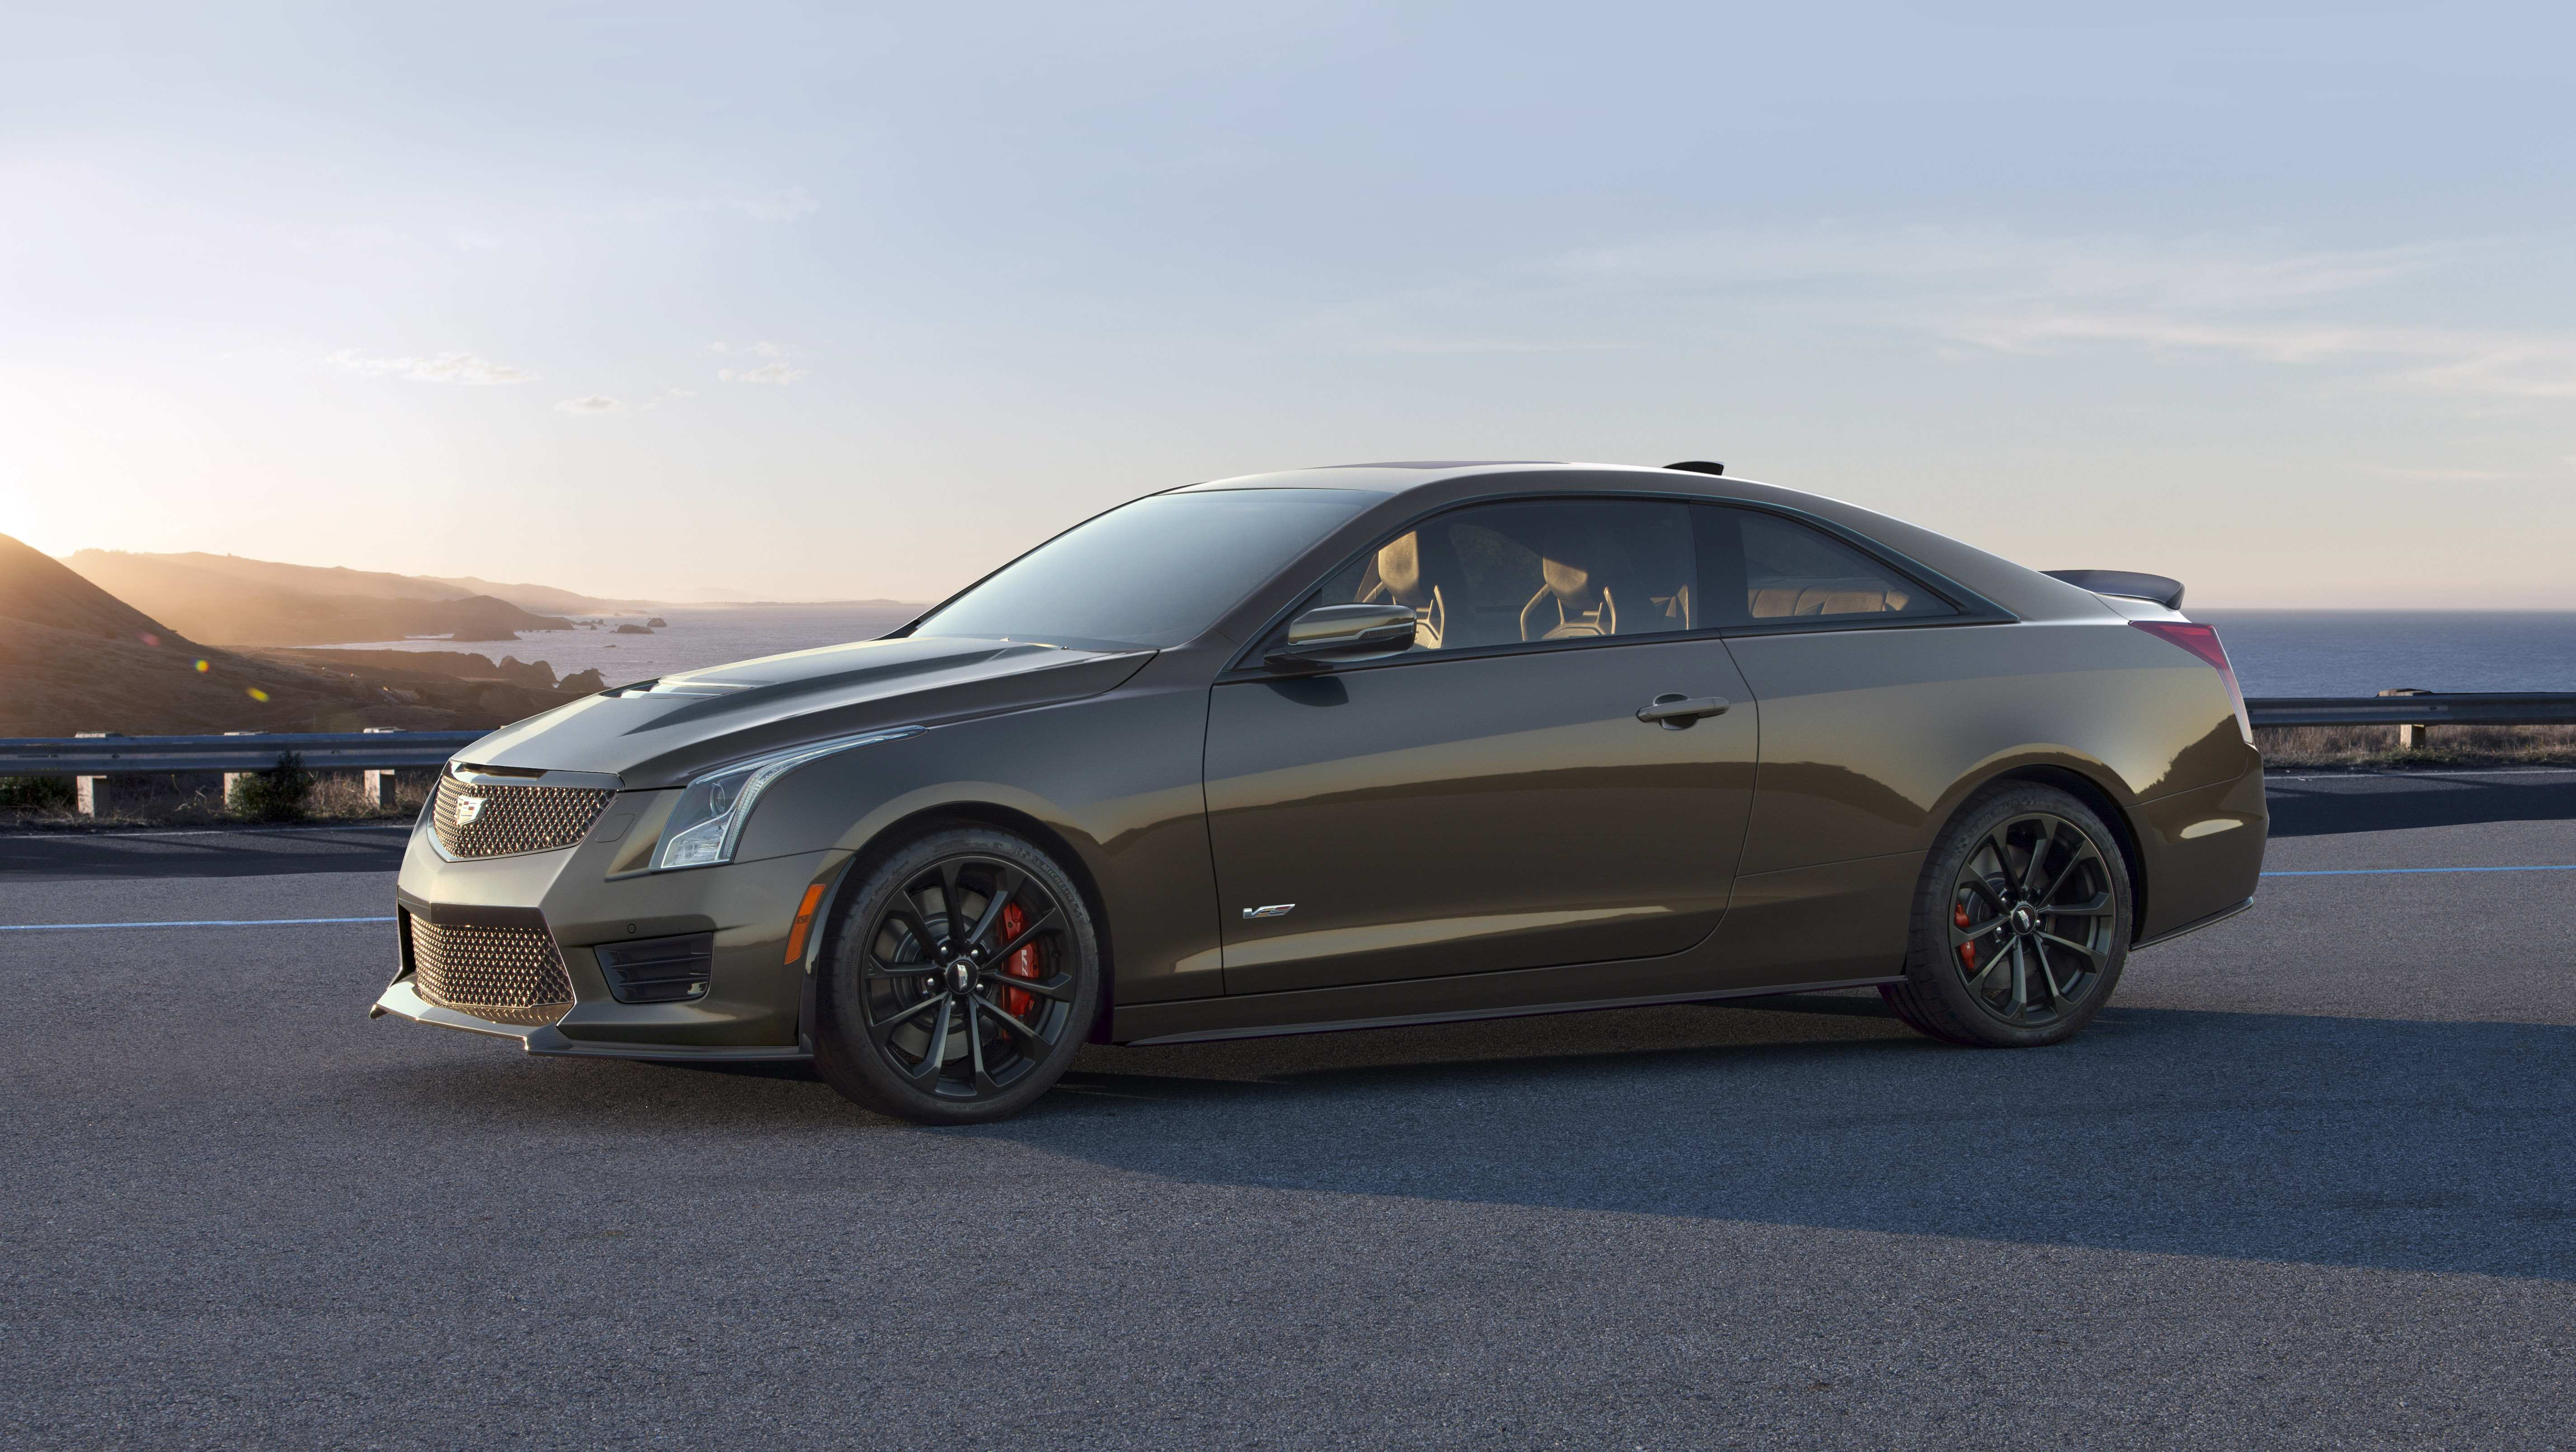 94 All New Cadillac Ats Coupe 2020 Prices